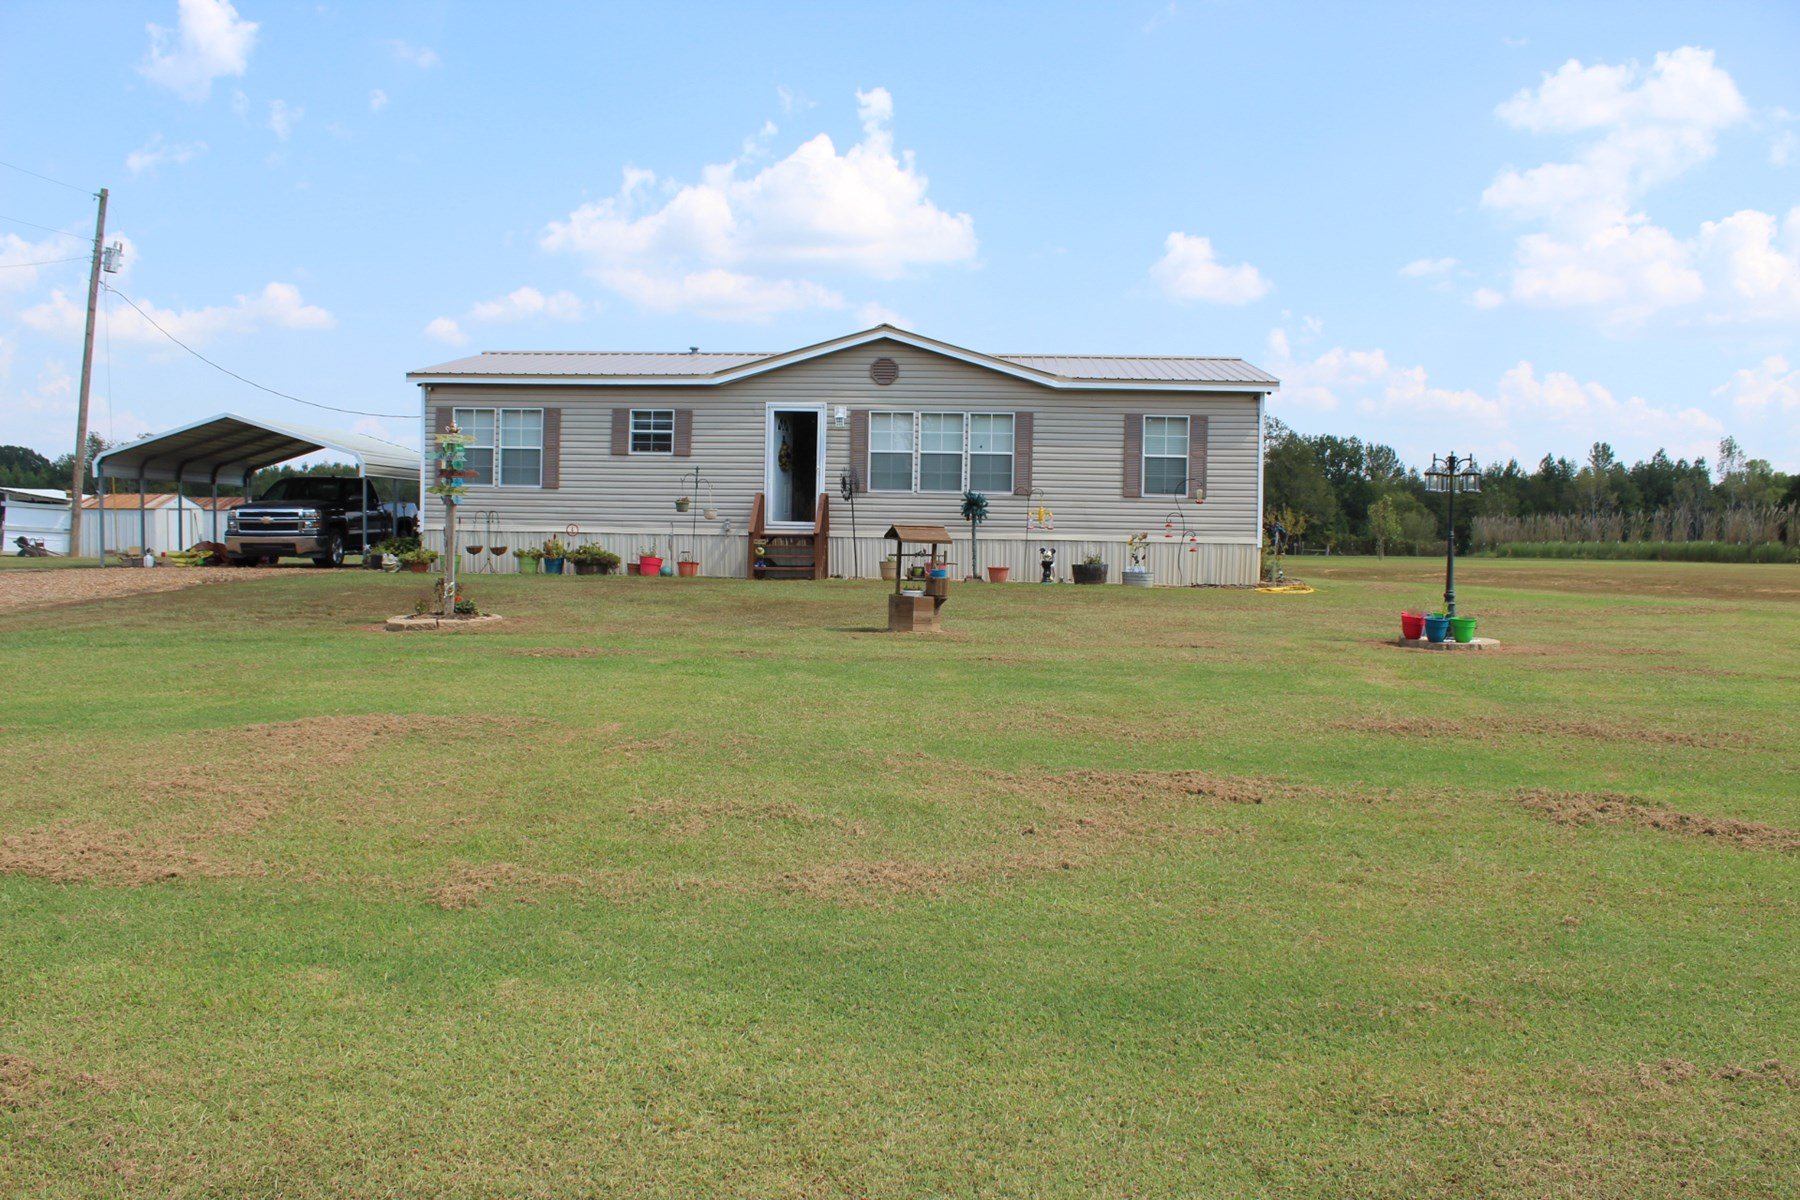 HOBBY FARM FOR SALE IN TN WITH ACREAGE, FENCING, BARN